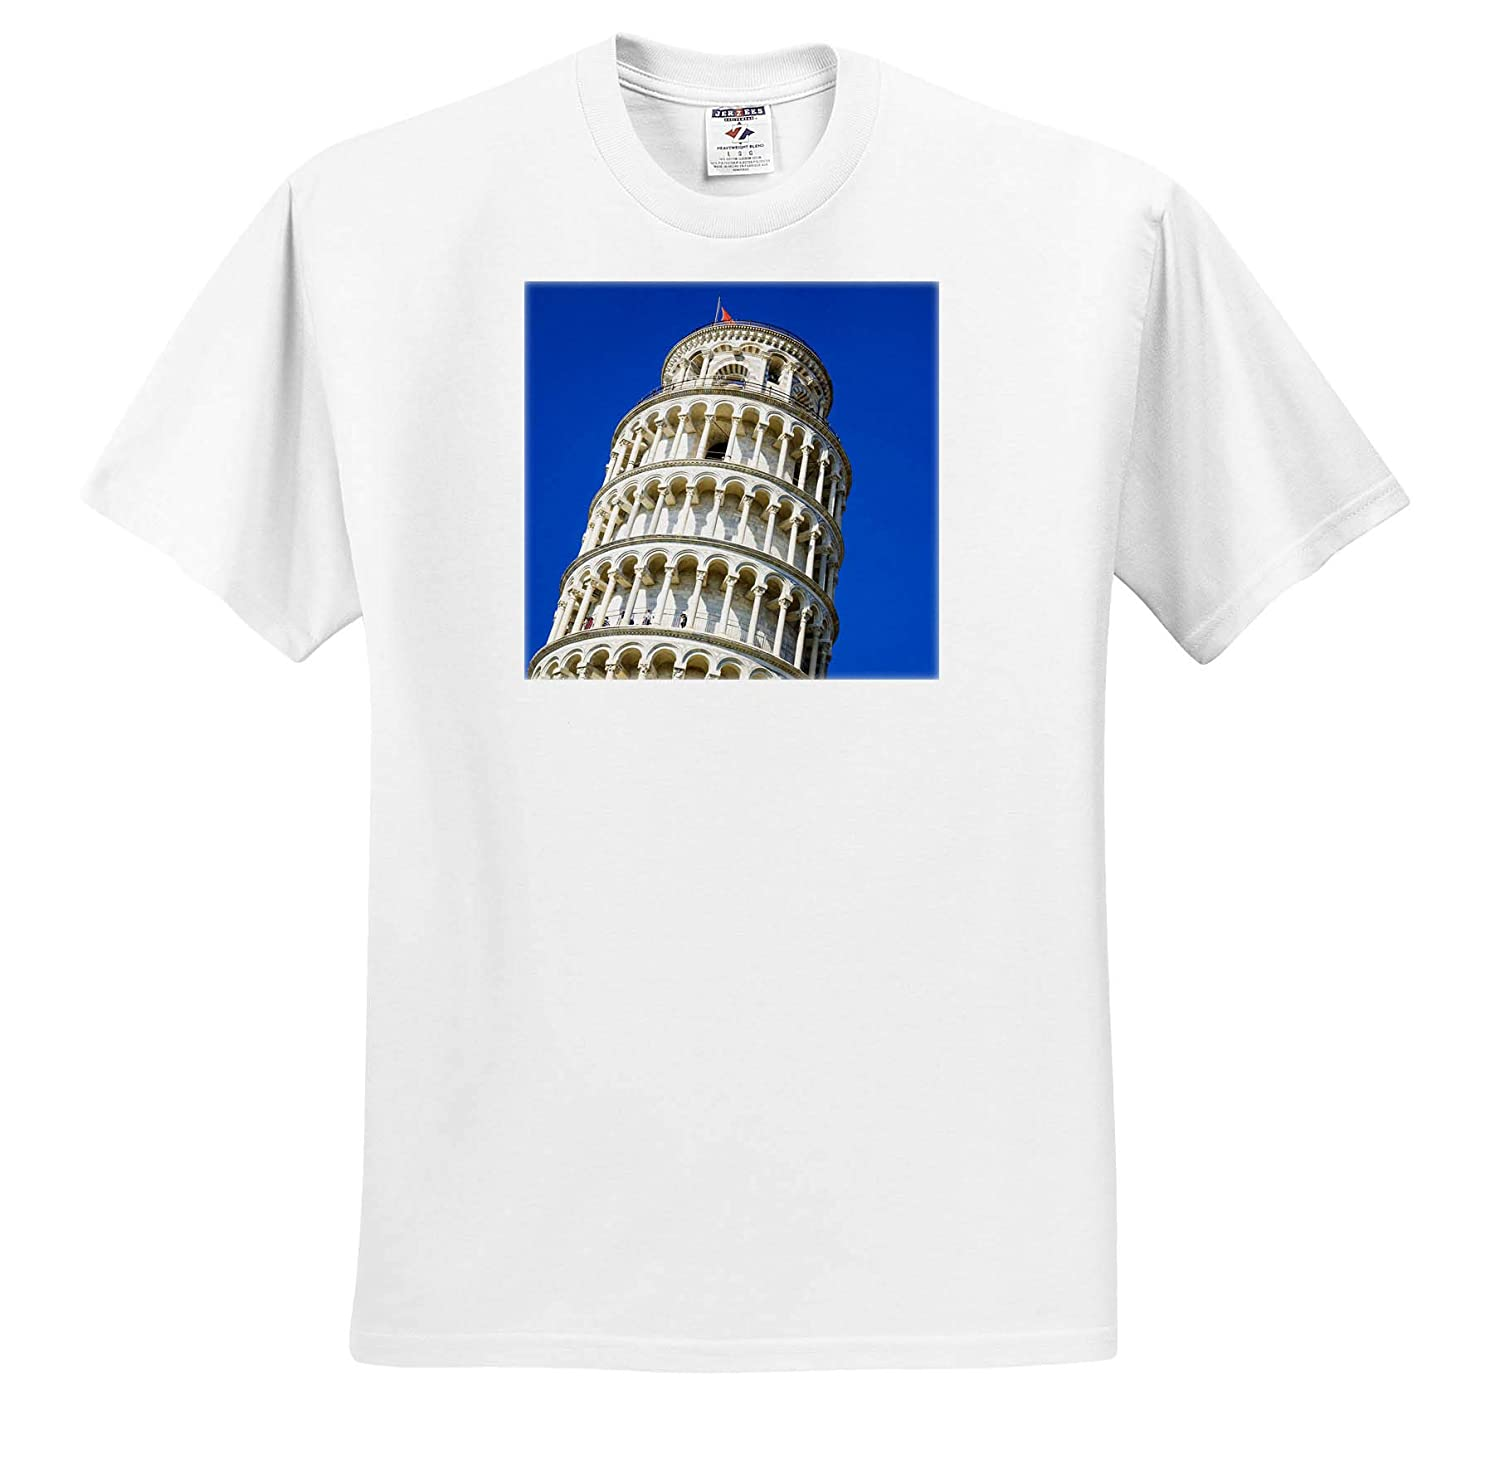 Italy Tuscany Pisa Adult T-Shirt XL 3dRose Danita Delimont ts/_313745 Tuscany The Leaning Tower of Pisa